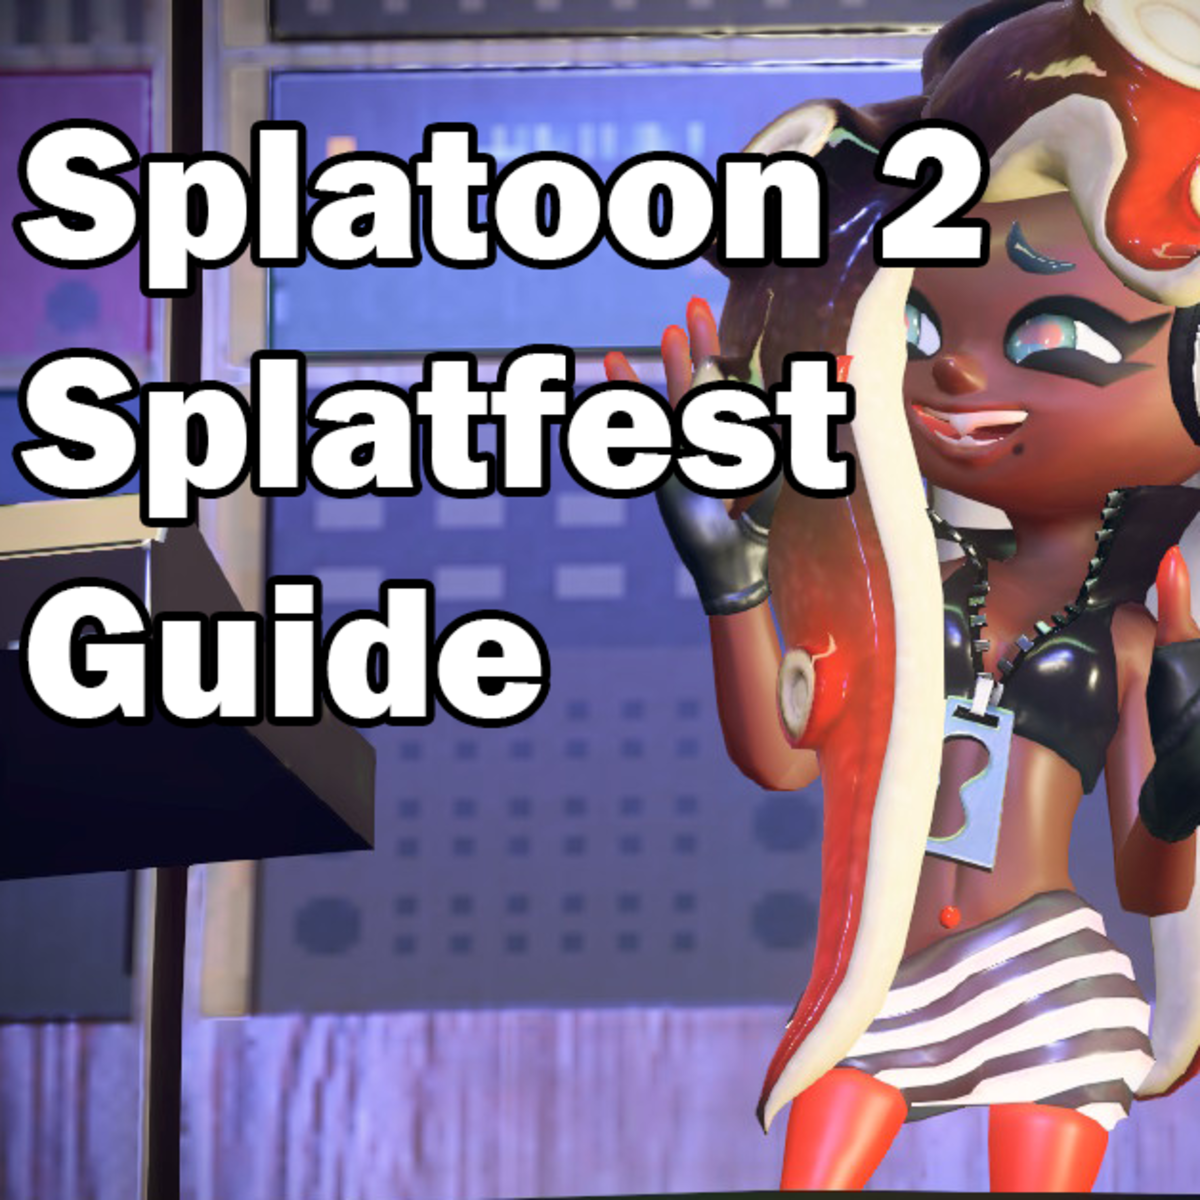 Splatoon 2 Splatfest Guide